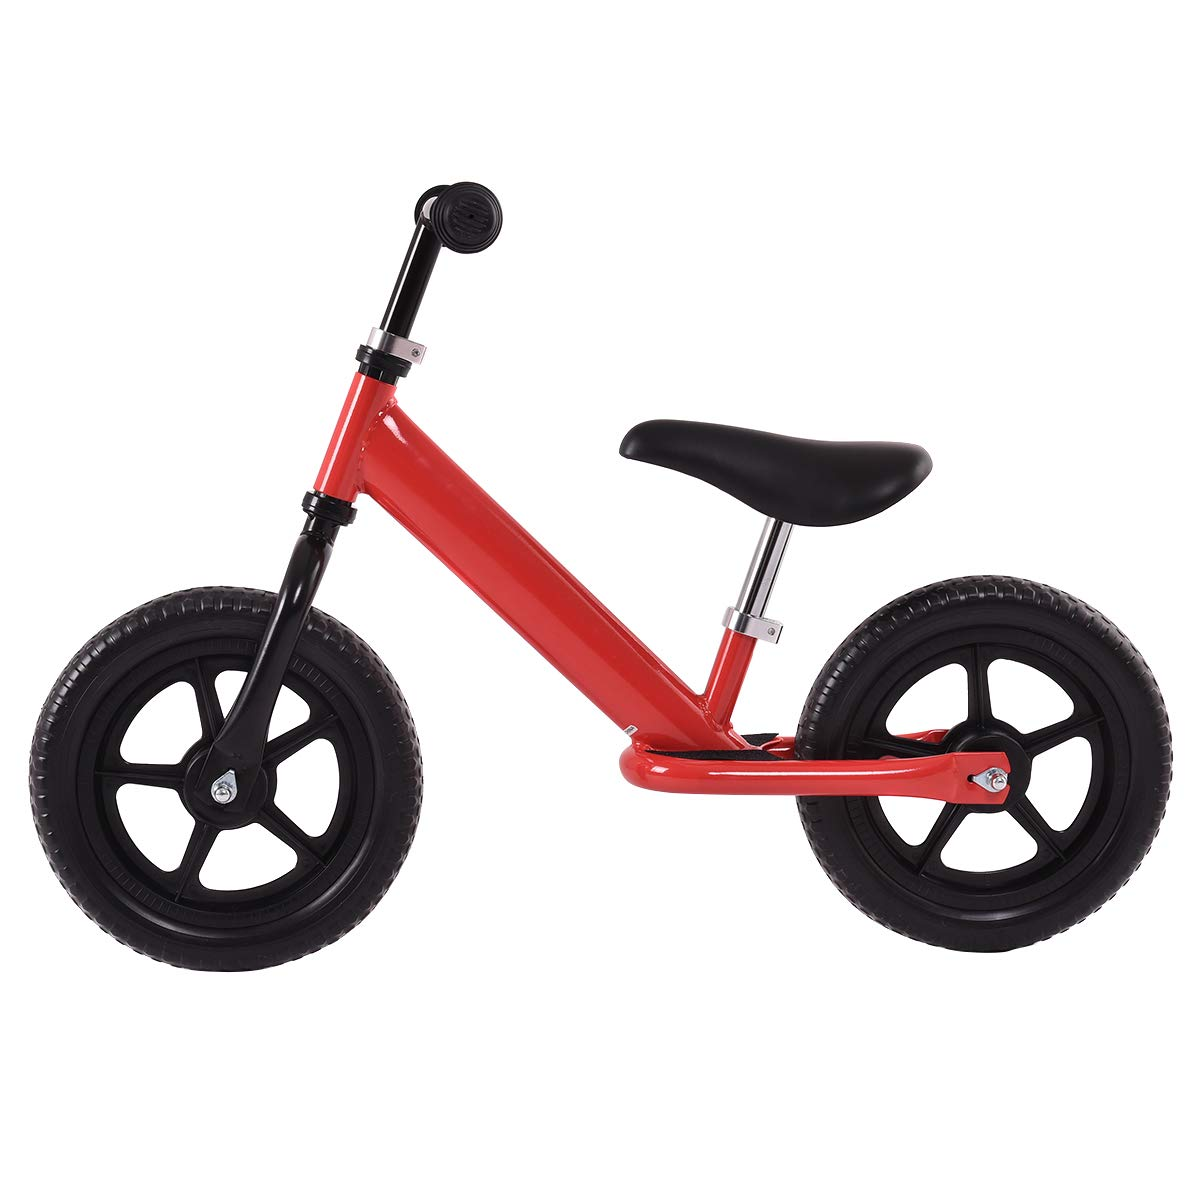 Costzon Kids Balance Bike, 12 Inch Classic Lightweight No-Pedal Toddlers Walking Bicycle w/Height Adjustable Seat and Handle, for Children Boys & Girls Age 2-5